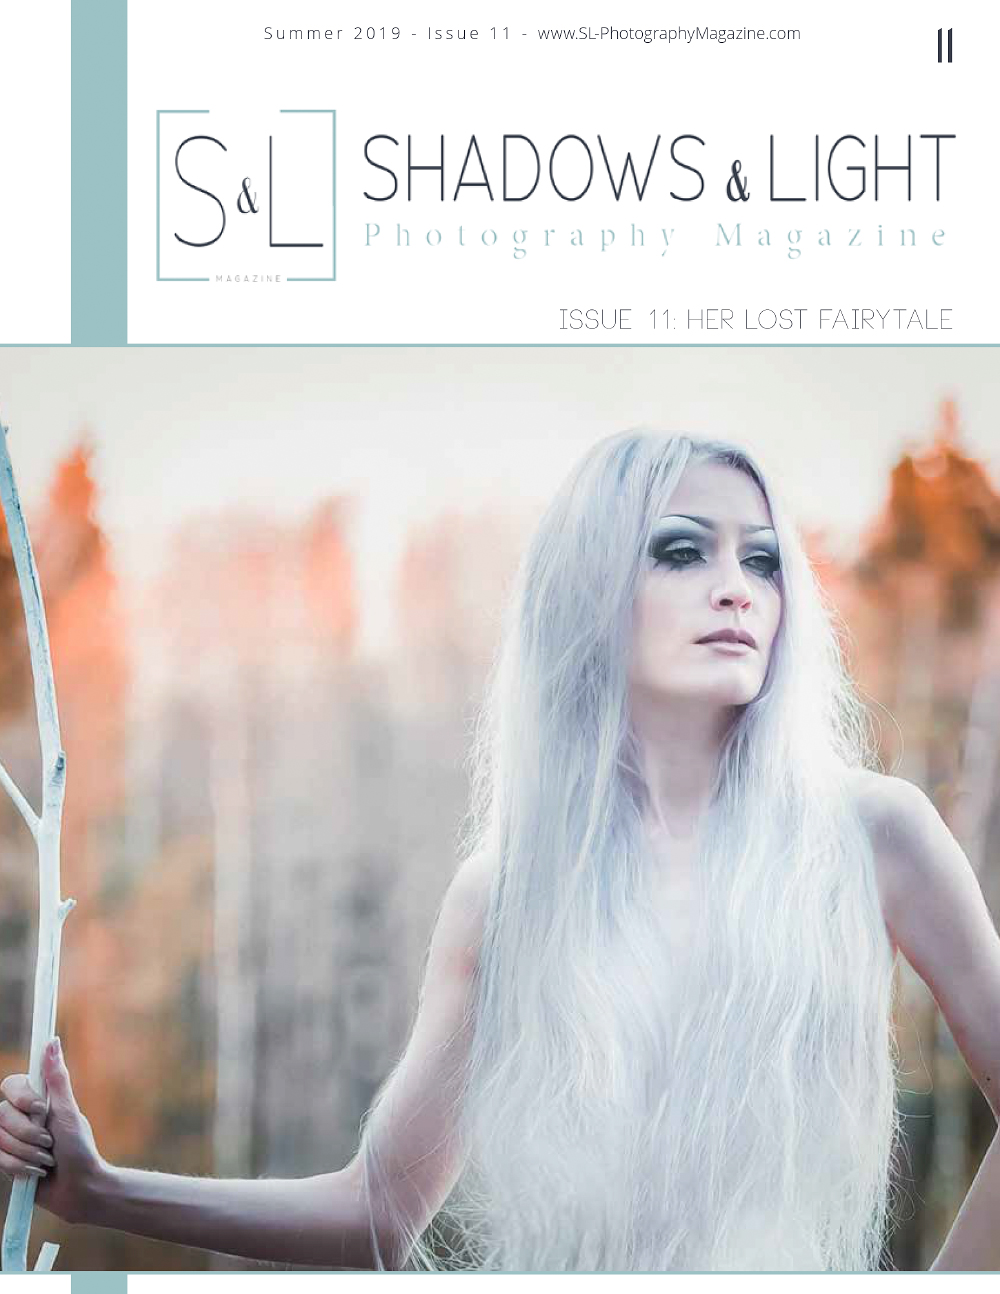 Shadows and Light Magazine - Issue 11